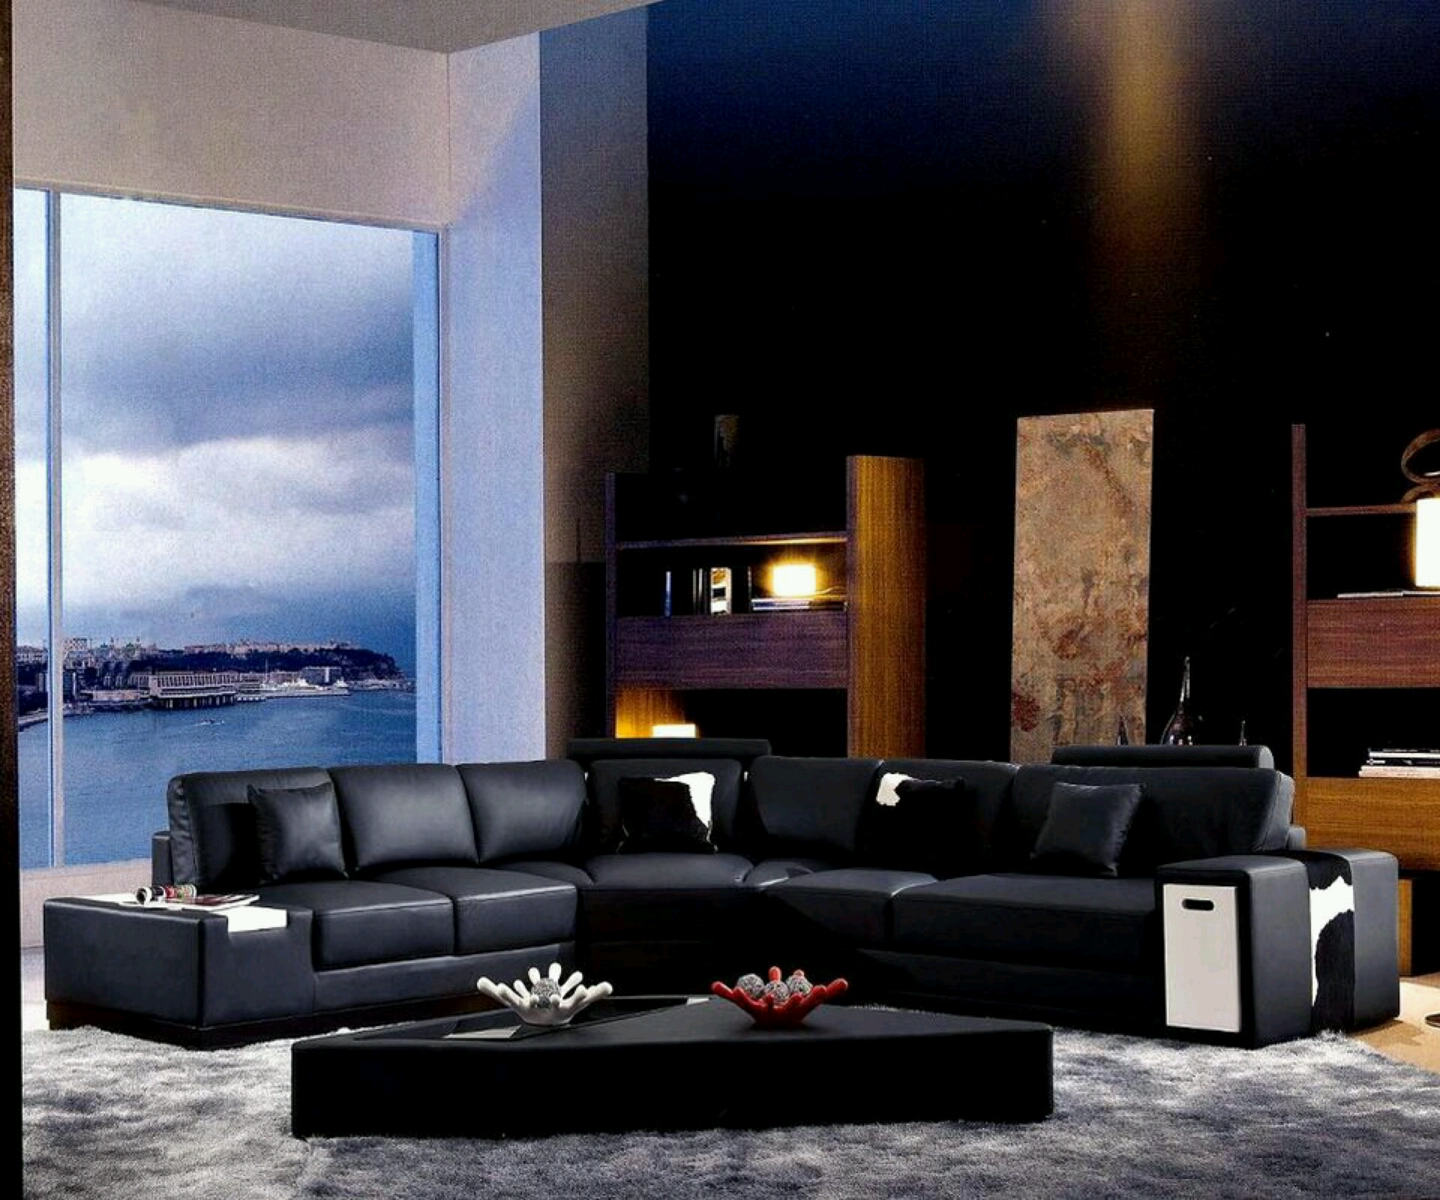 New home designs latest luxury living rooms interior Modern living room interior design 2012